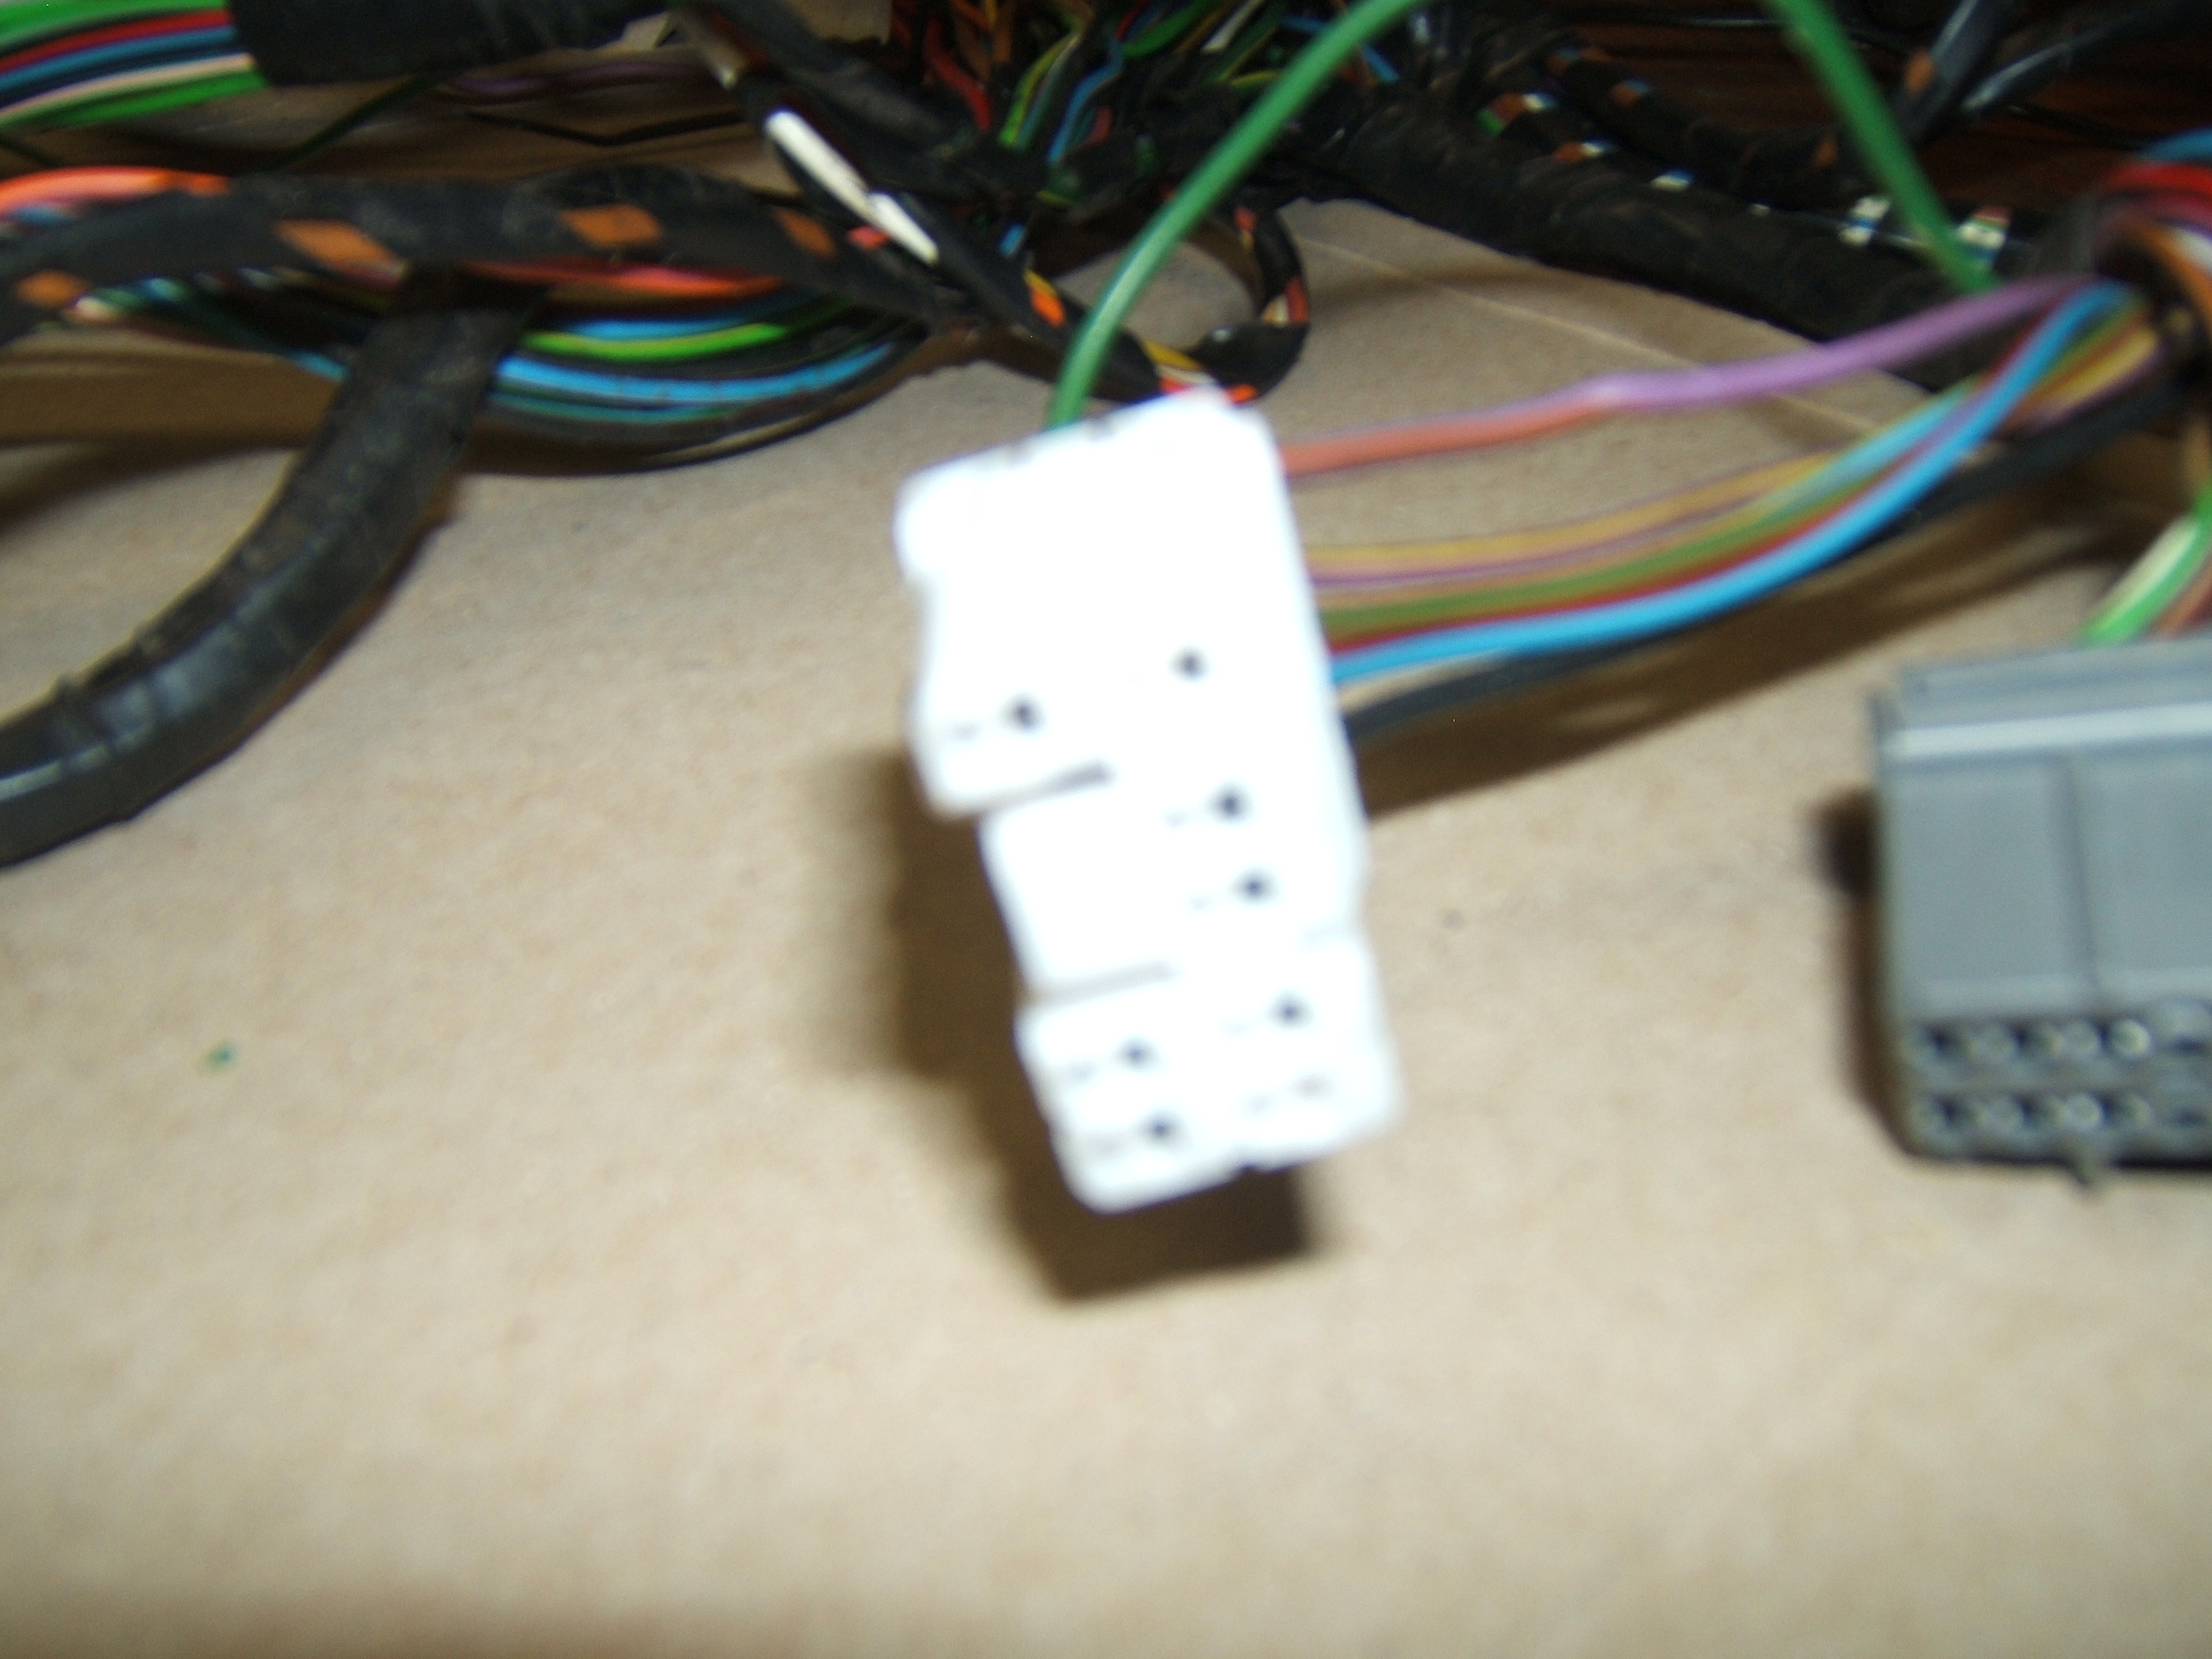 Mgfcarsca Canadian Mgf Importer Electric Power Assisted Steering Car Wiring Harness Bulkhead Grommet The Fifth Wire Solid Pink Goes To Diagnostic Socket C0040 And This Too Had Be Spliced Into Main Just Behind